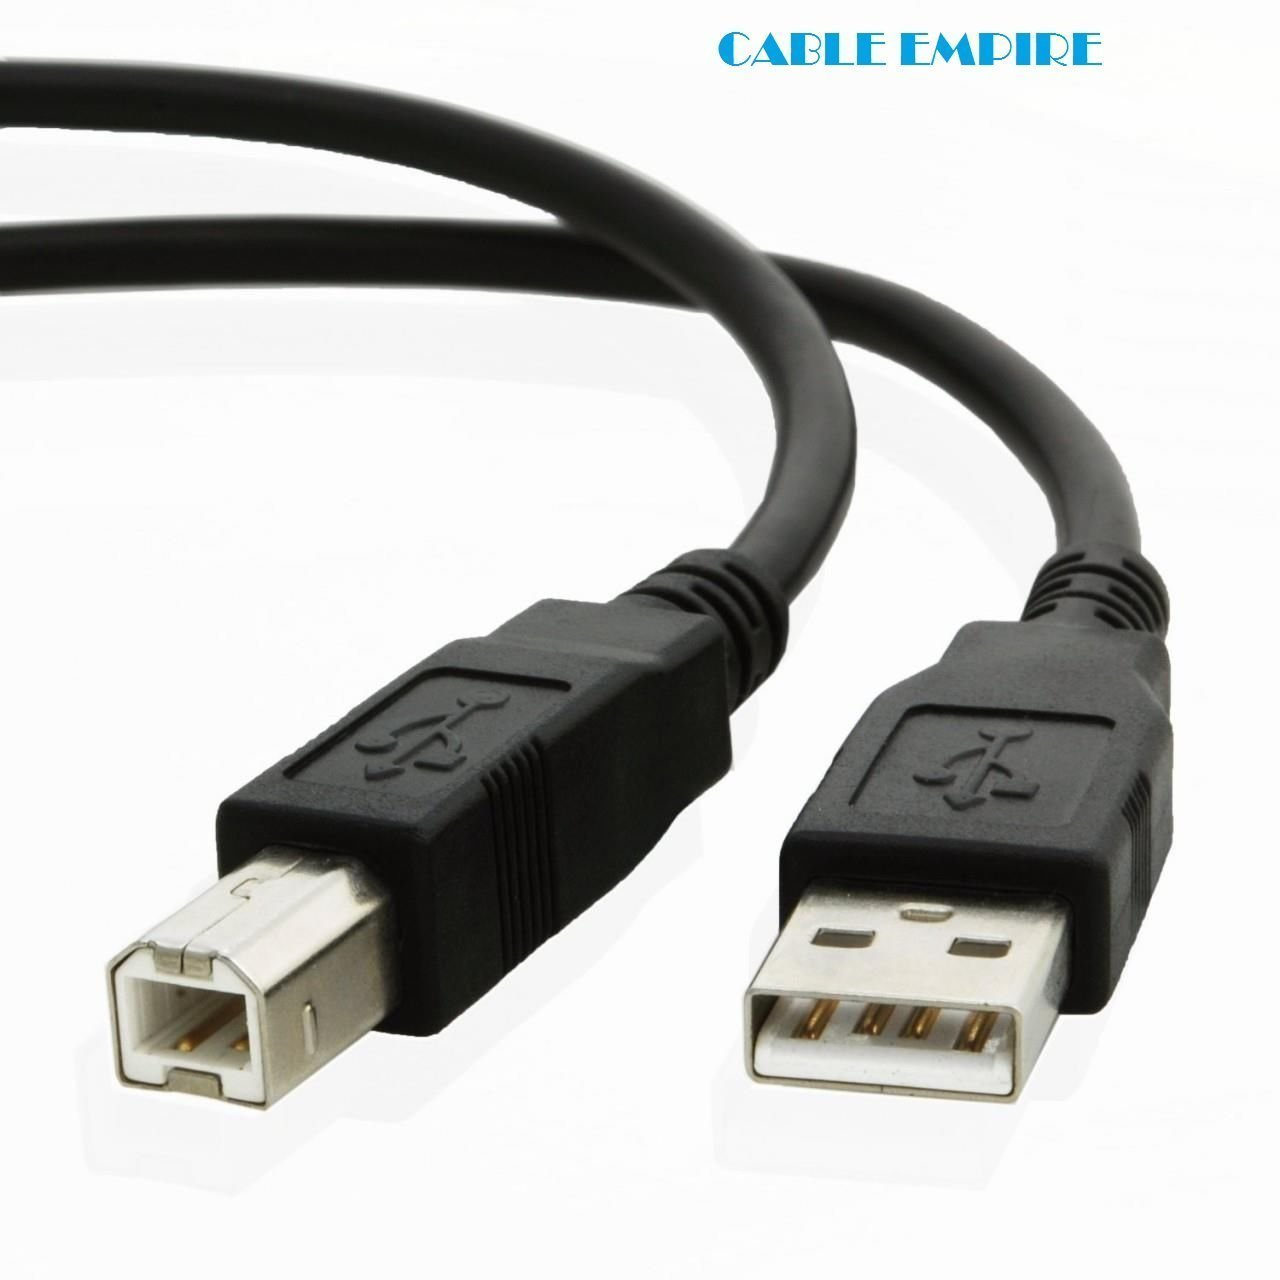 Amazon.com: Cable Empire USB Cable for Canon PIXMA MG5520 Printer ...